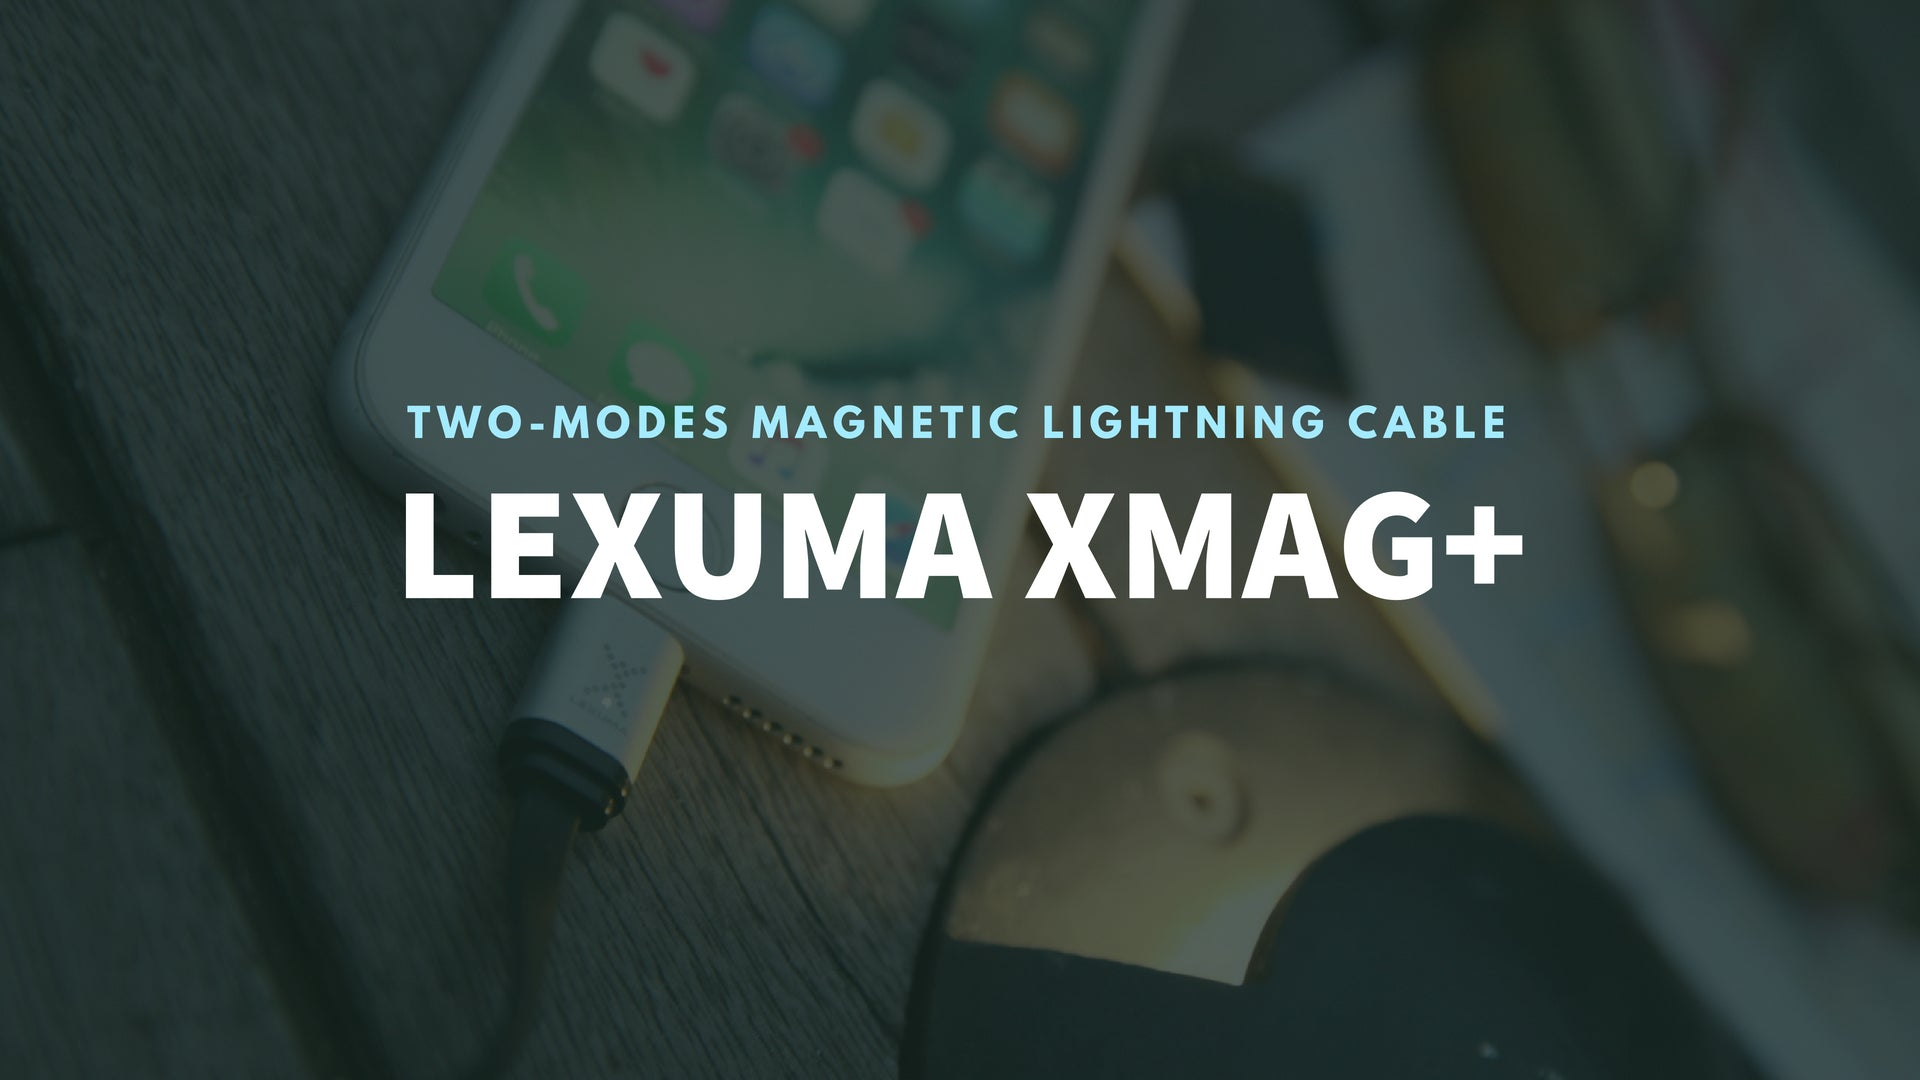 Lexuma XMag XMAG-LC-Plus Magnetic Lightning Cable (For Apple Devices) magnetic charging cable apple best magnetic lightning cable anker magnetic charging cable review usb c iphone XS charger quick charge 3.0 magnetic cable magnetic lightning usb cable mobile accessories ipad apple watch charger cable 2 in 1 charger cable trilobi volta charger znaps wsken iOS magcable iPhone充電線 - iMartCity banner